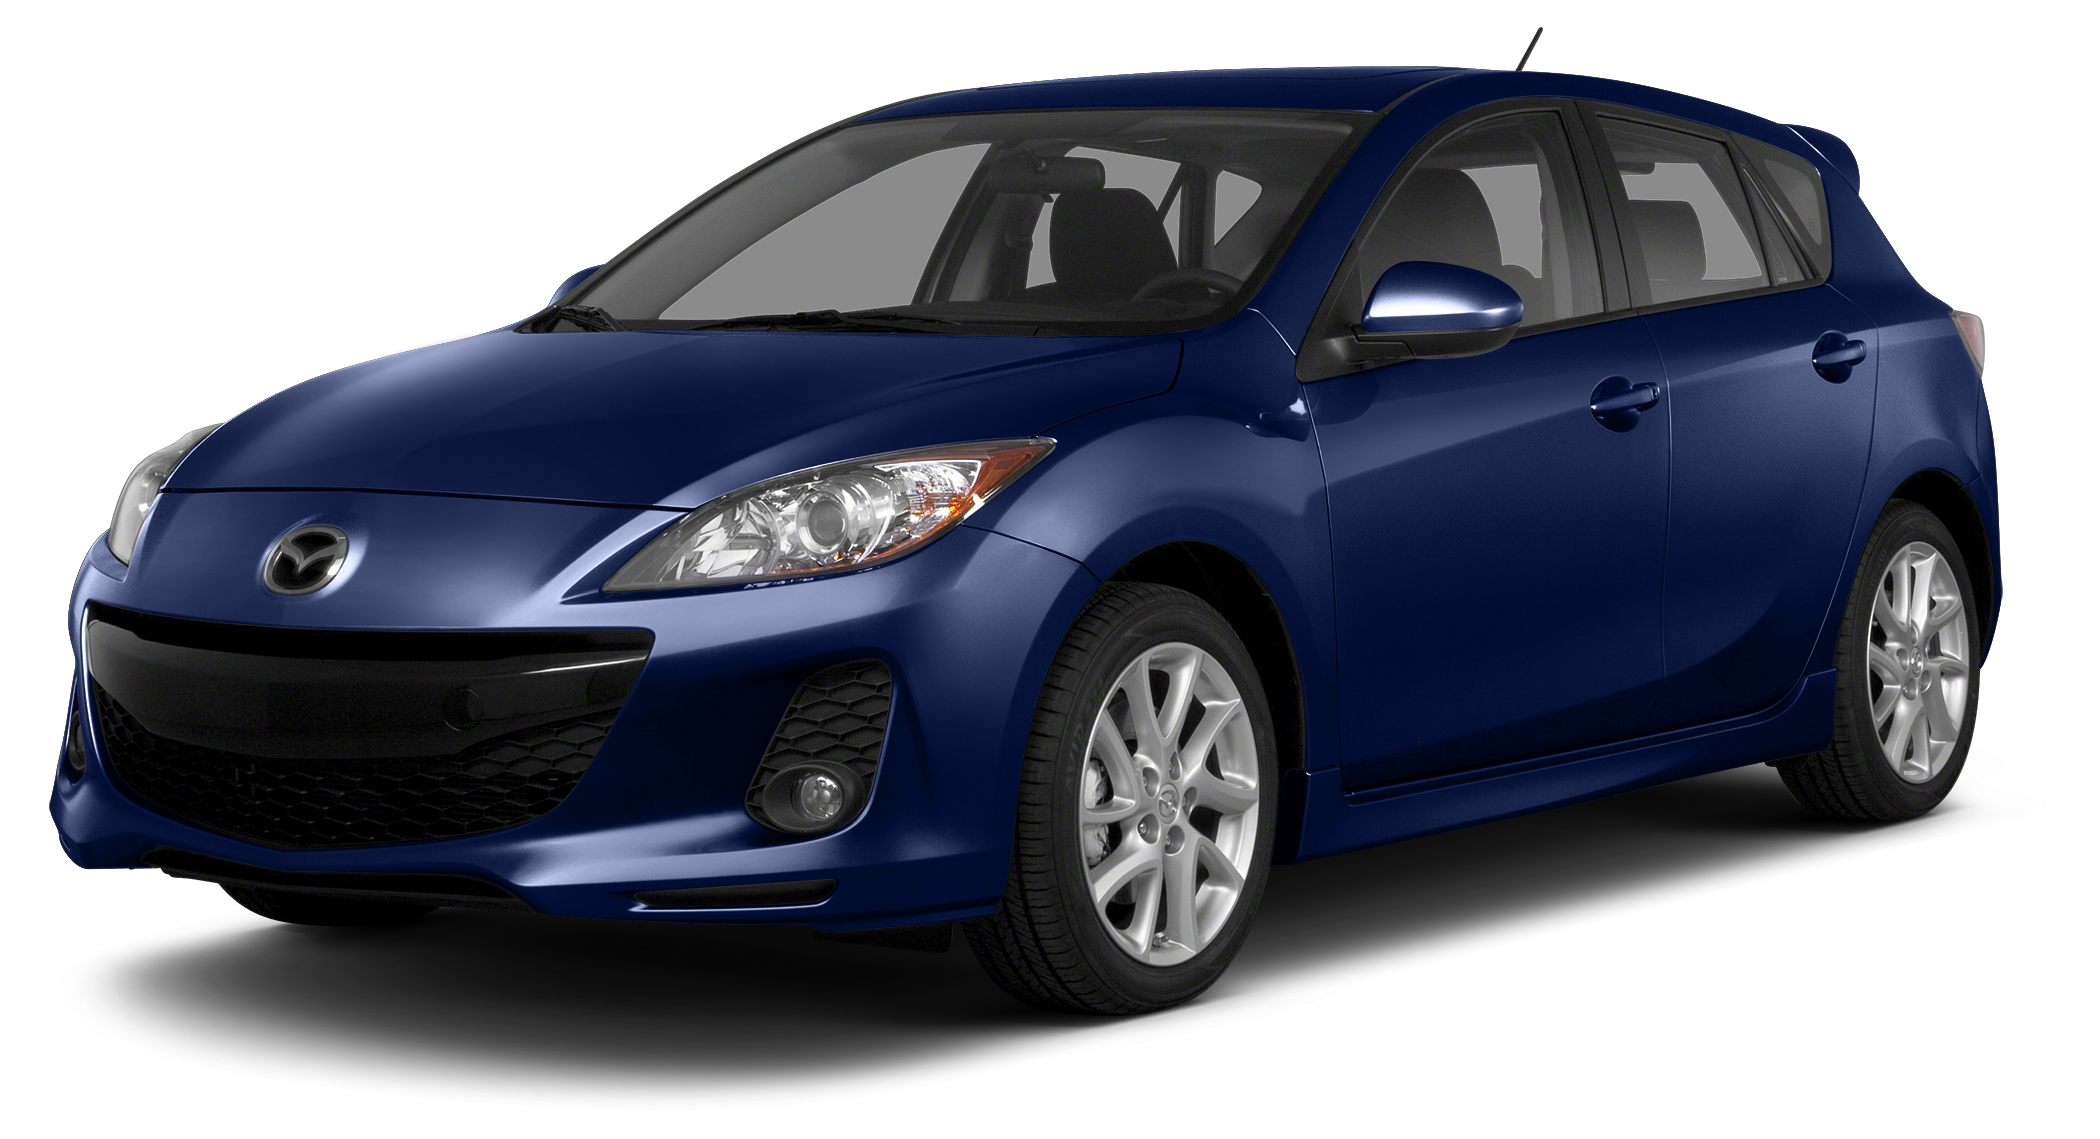 2013 Mazda MAZDA3 i Touring OUR PRICESYoure probably wondering why our prices are so much lower